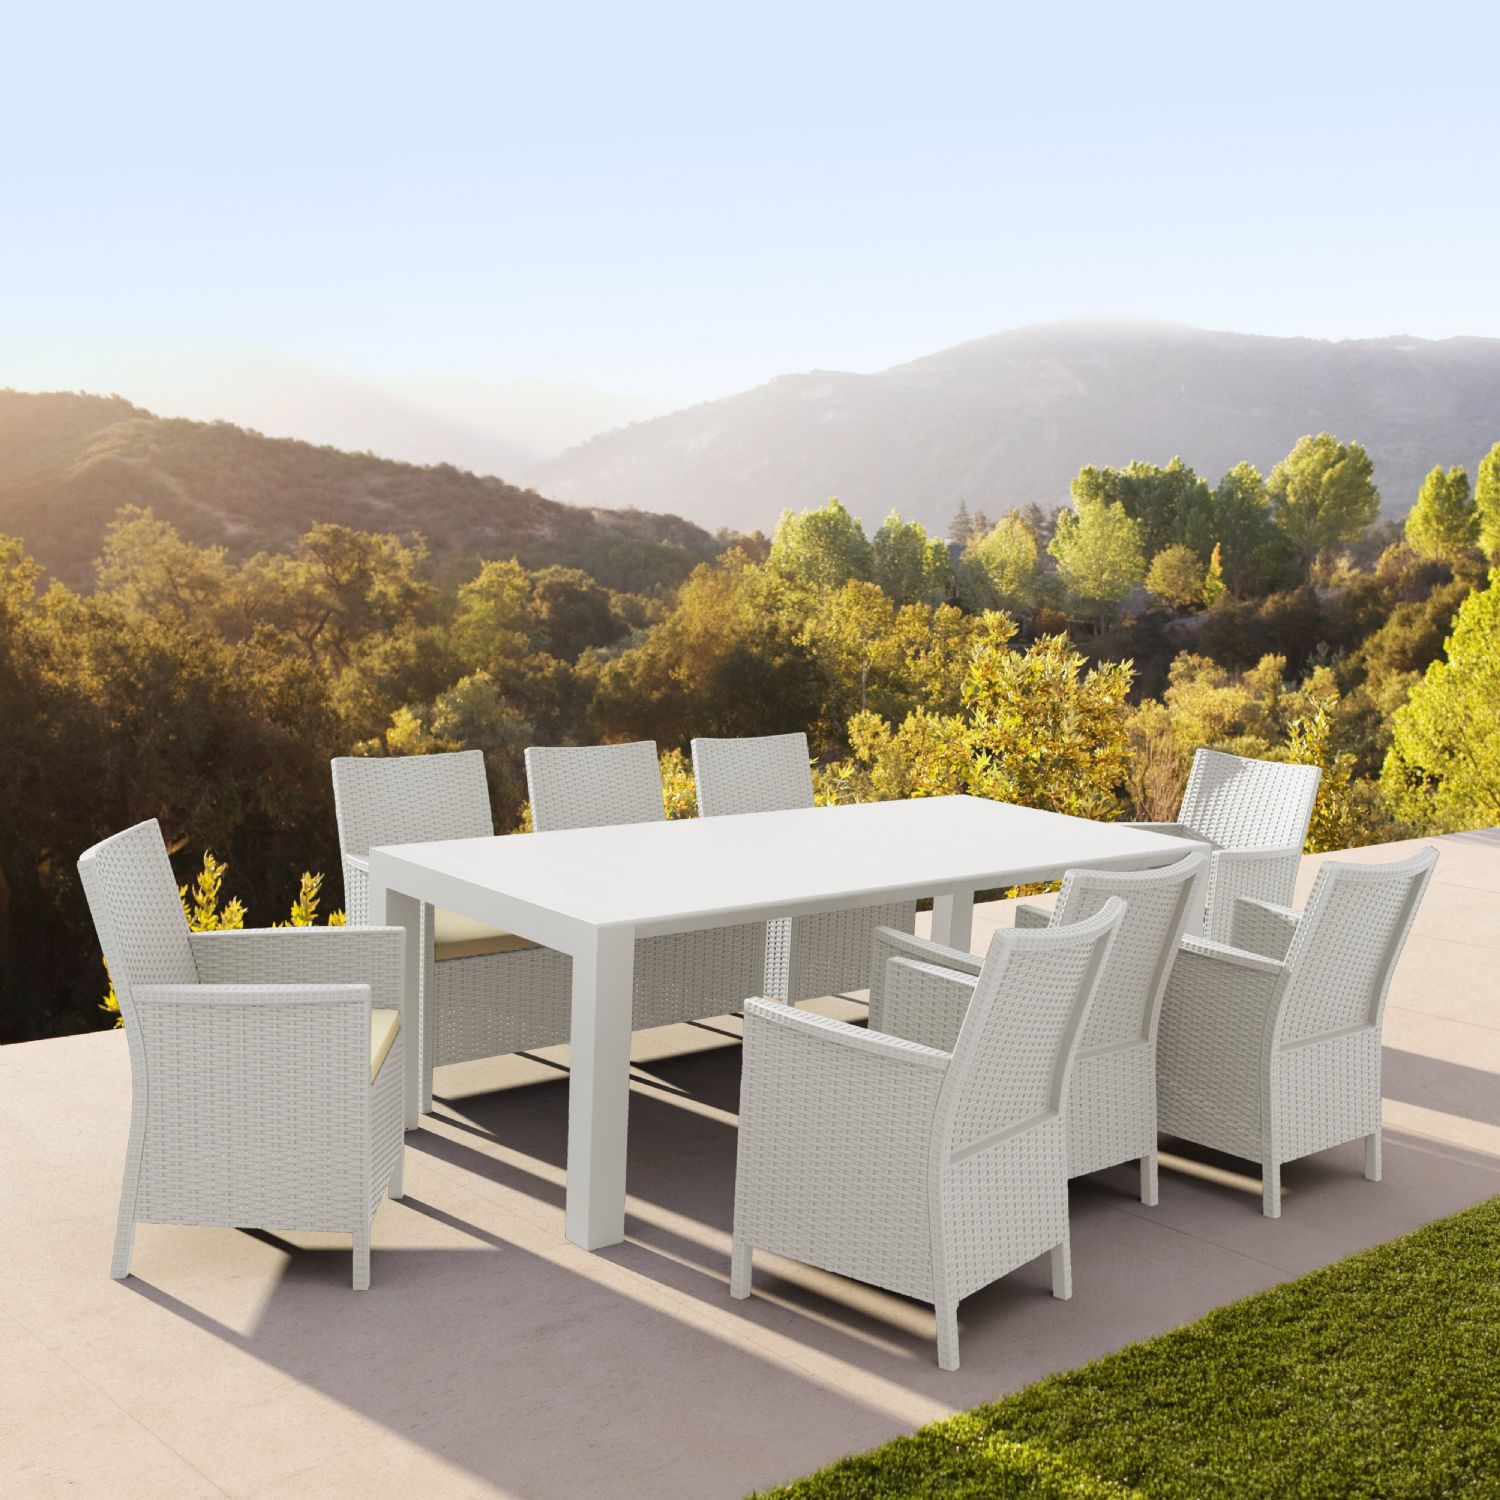 Vegas Outdoor Dining Table Extendable from 70 to 86 inch Dark Gray ISP774-DG - 26